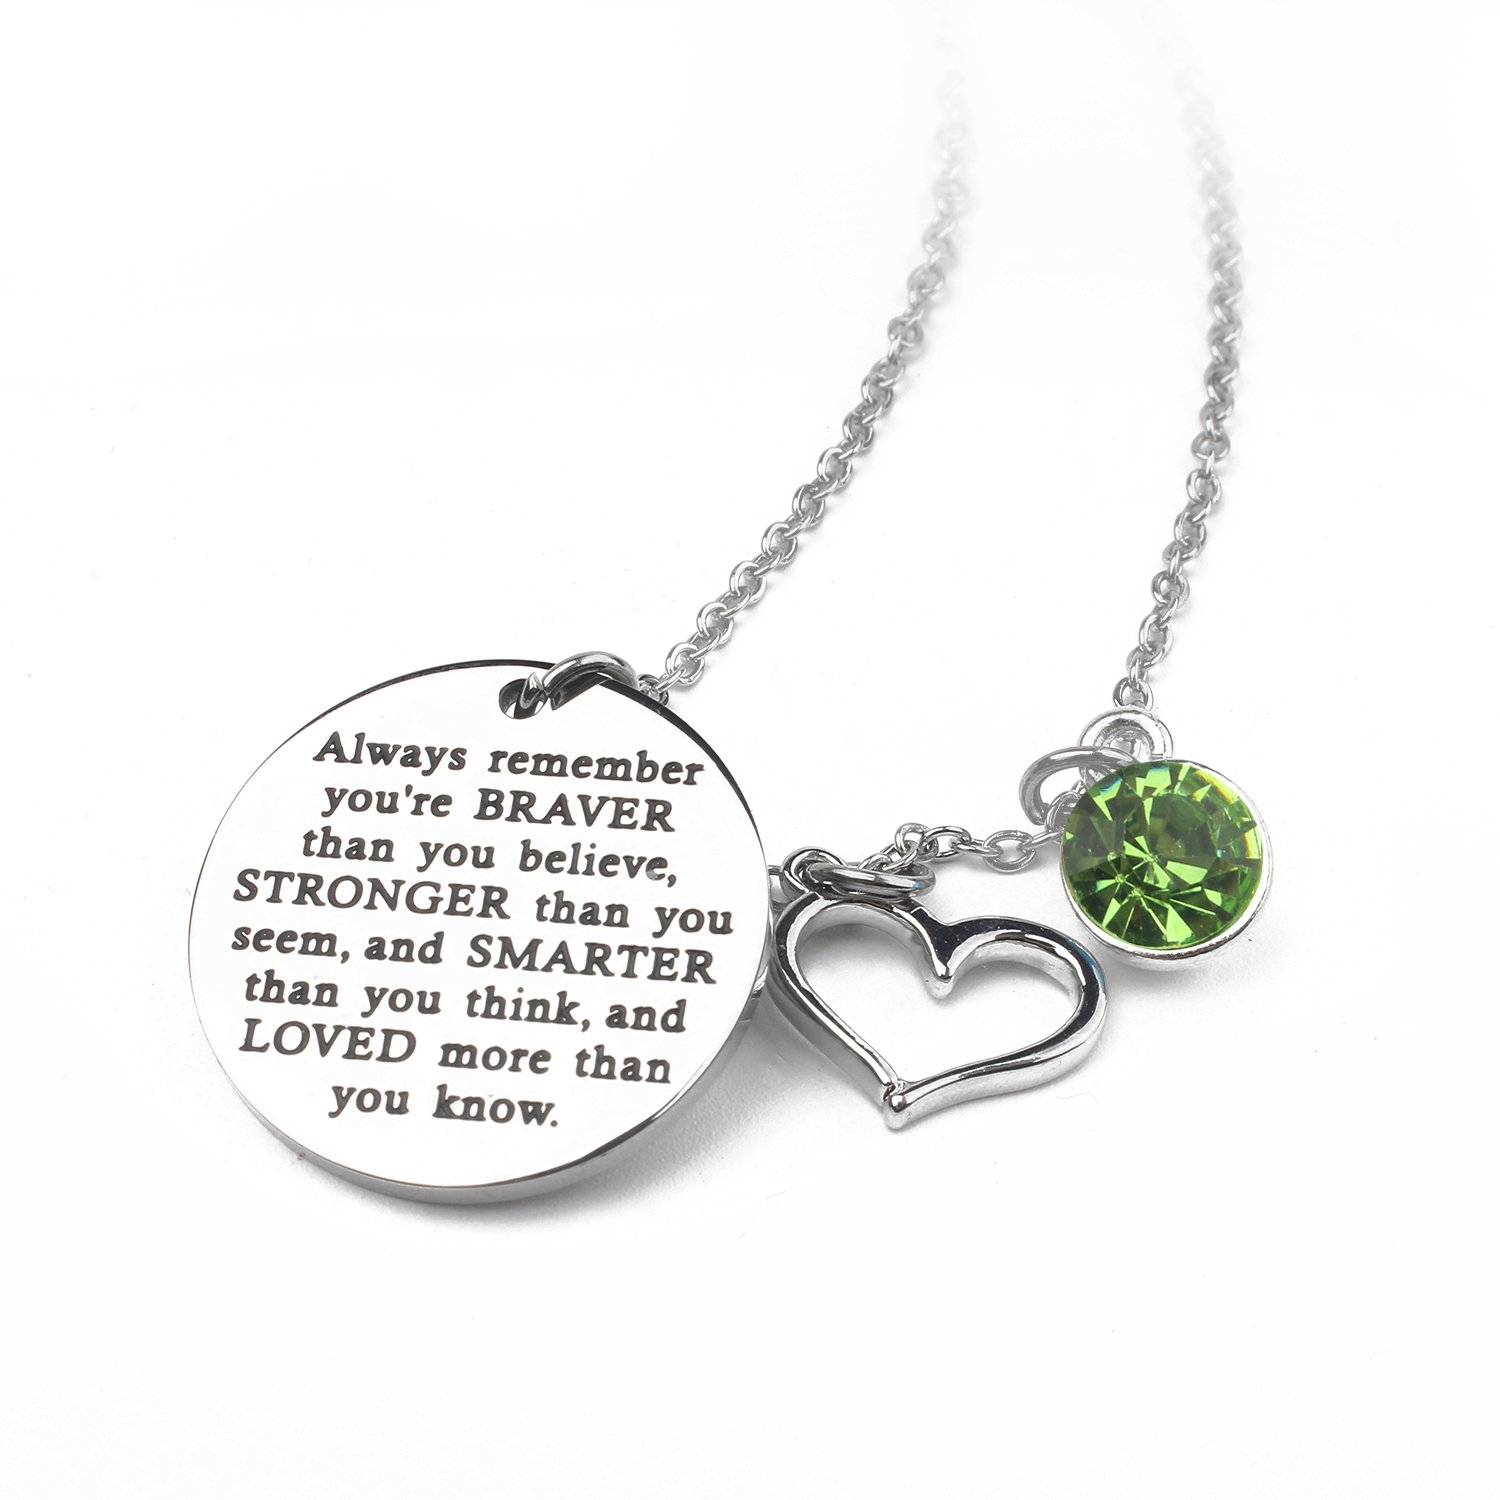 Zaoming You Are Braver Than You Believe Inspirational Necklace With Birthstone Graduation Gift Best Friend Encouragement Gifts Birthday Gift (08-August Peridot)